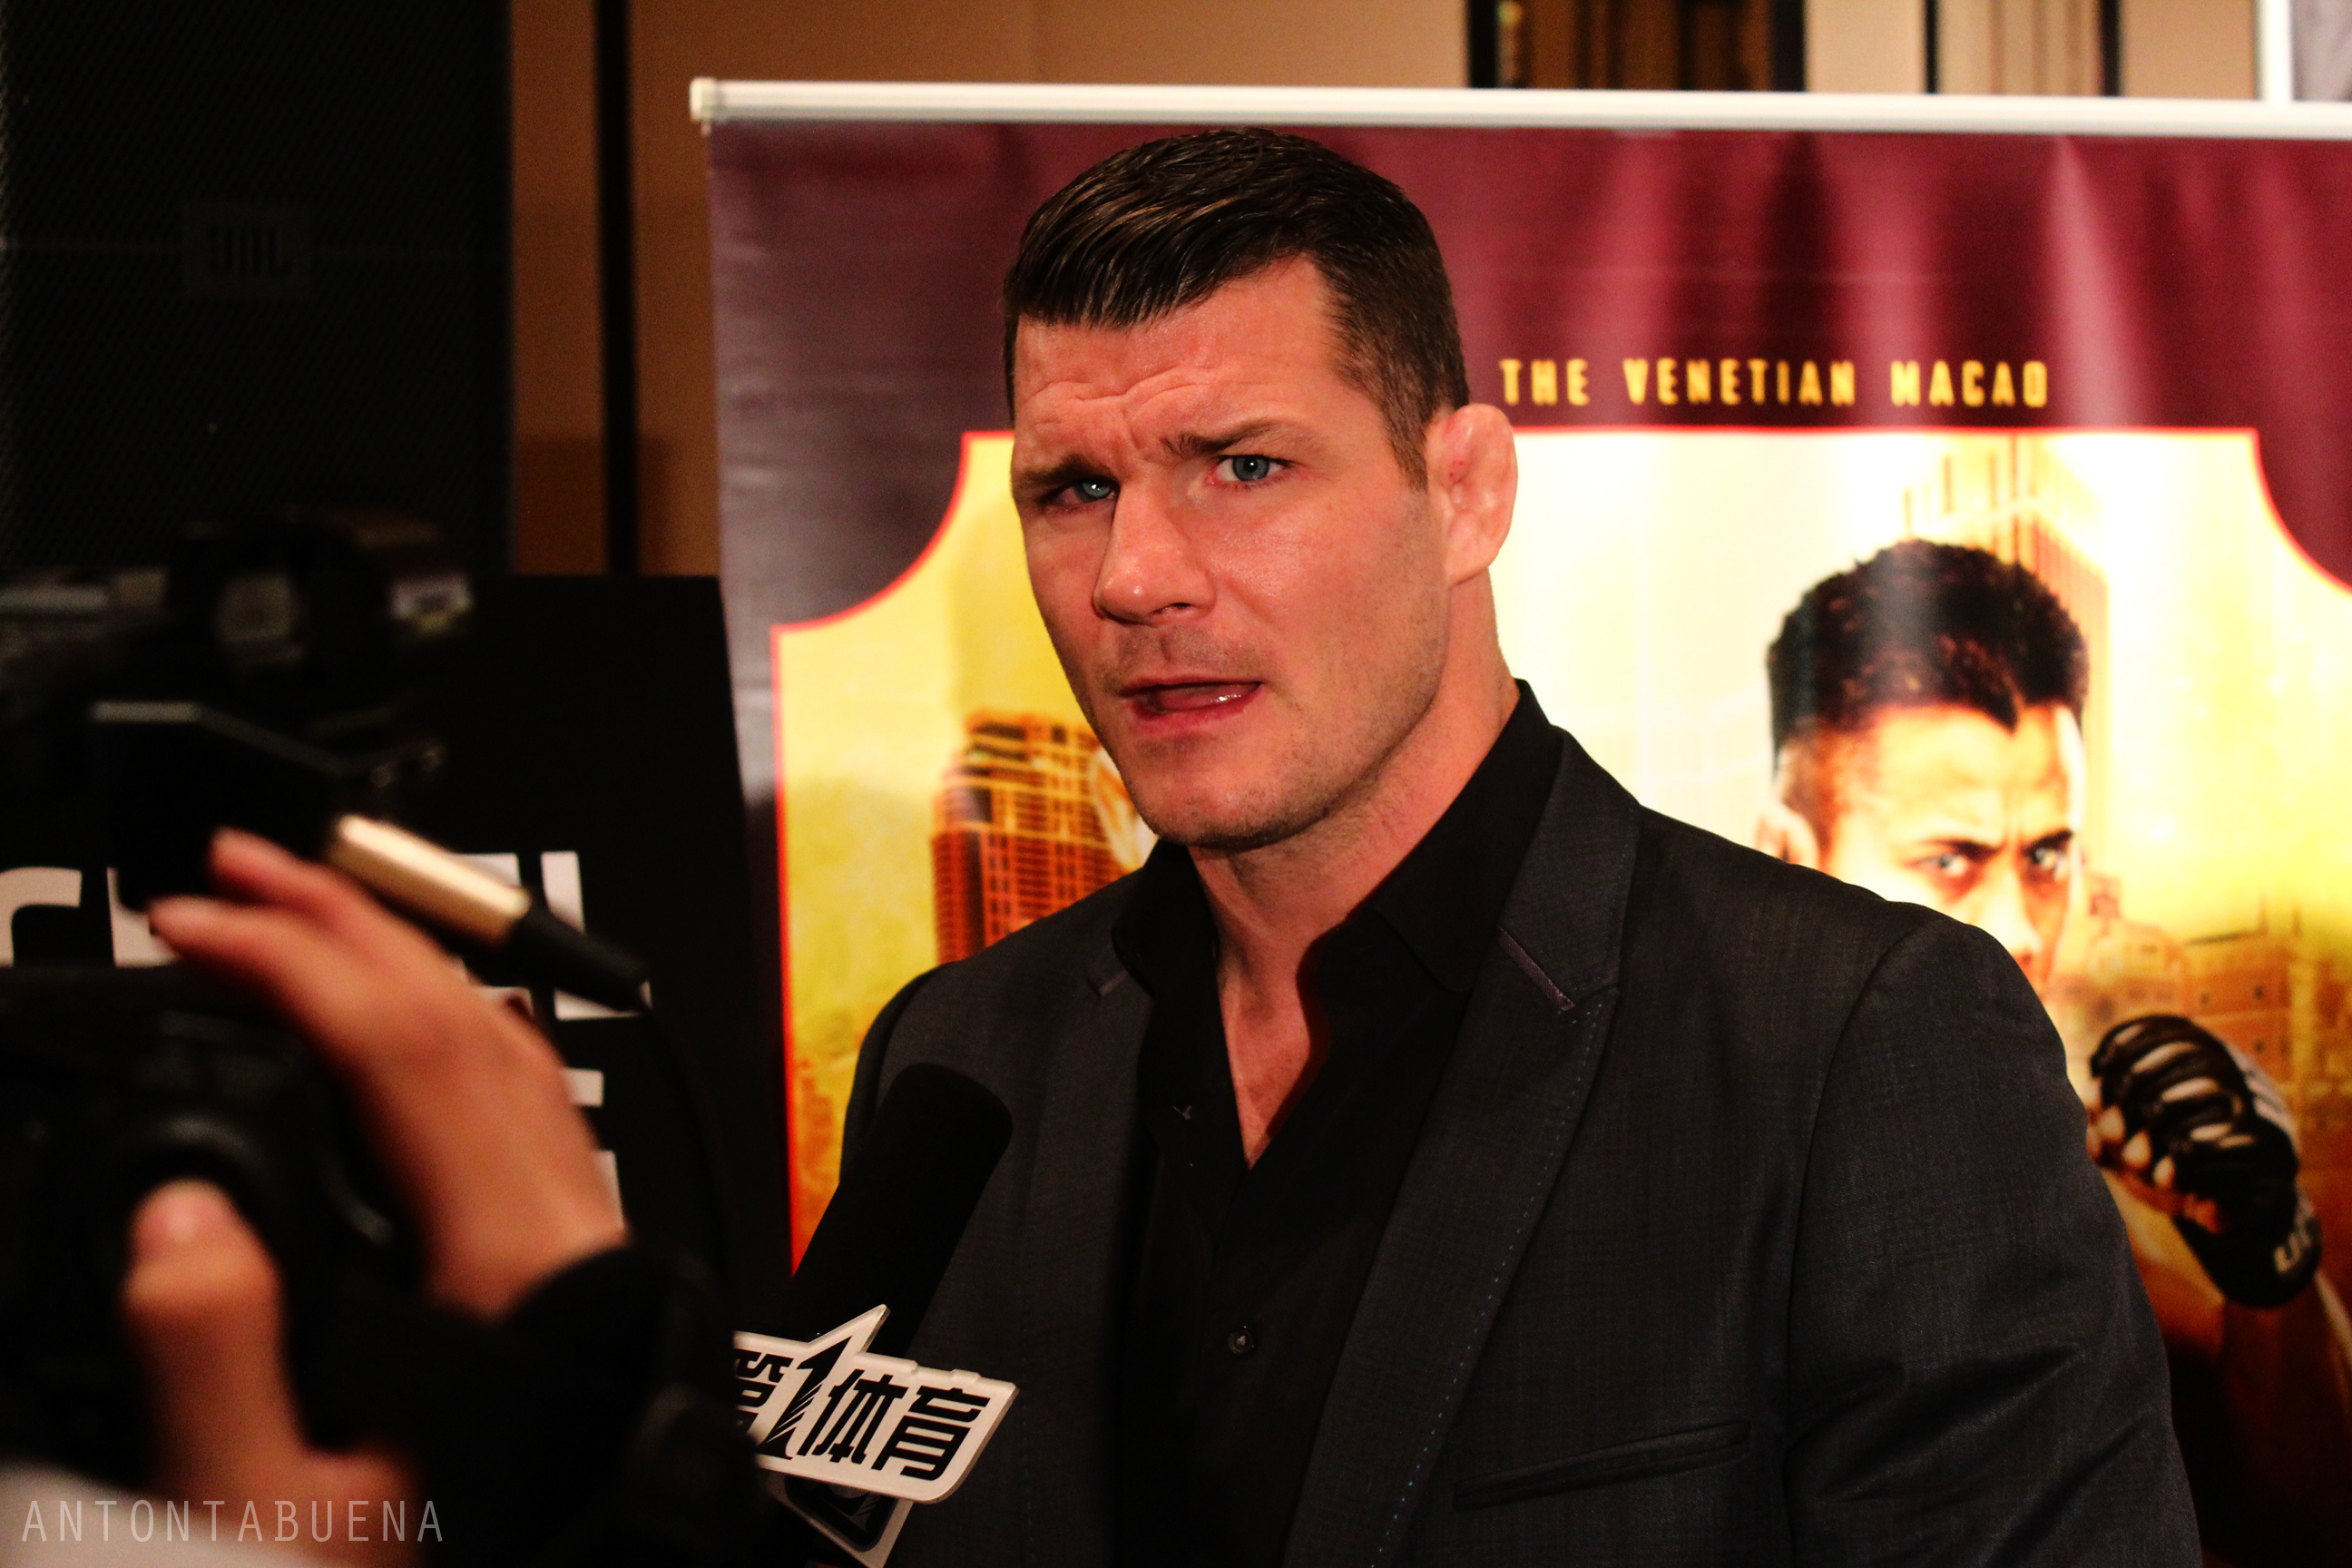 Michael Bisping, photo by Anton Tabuena